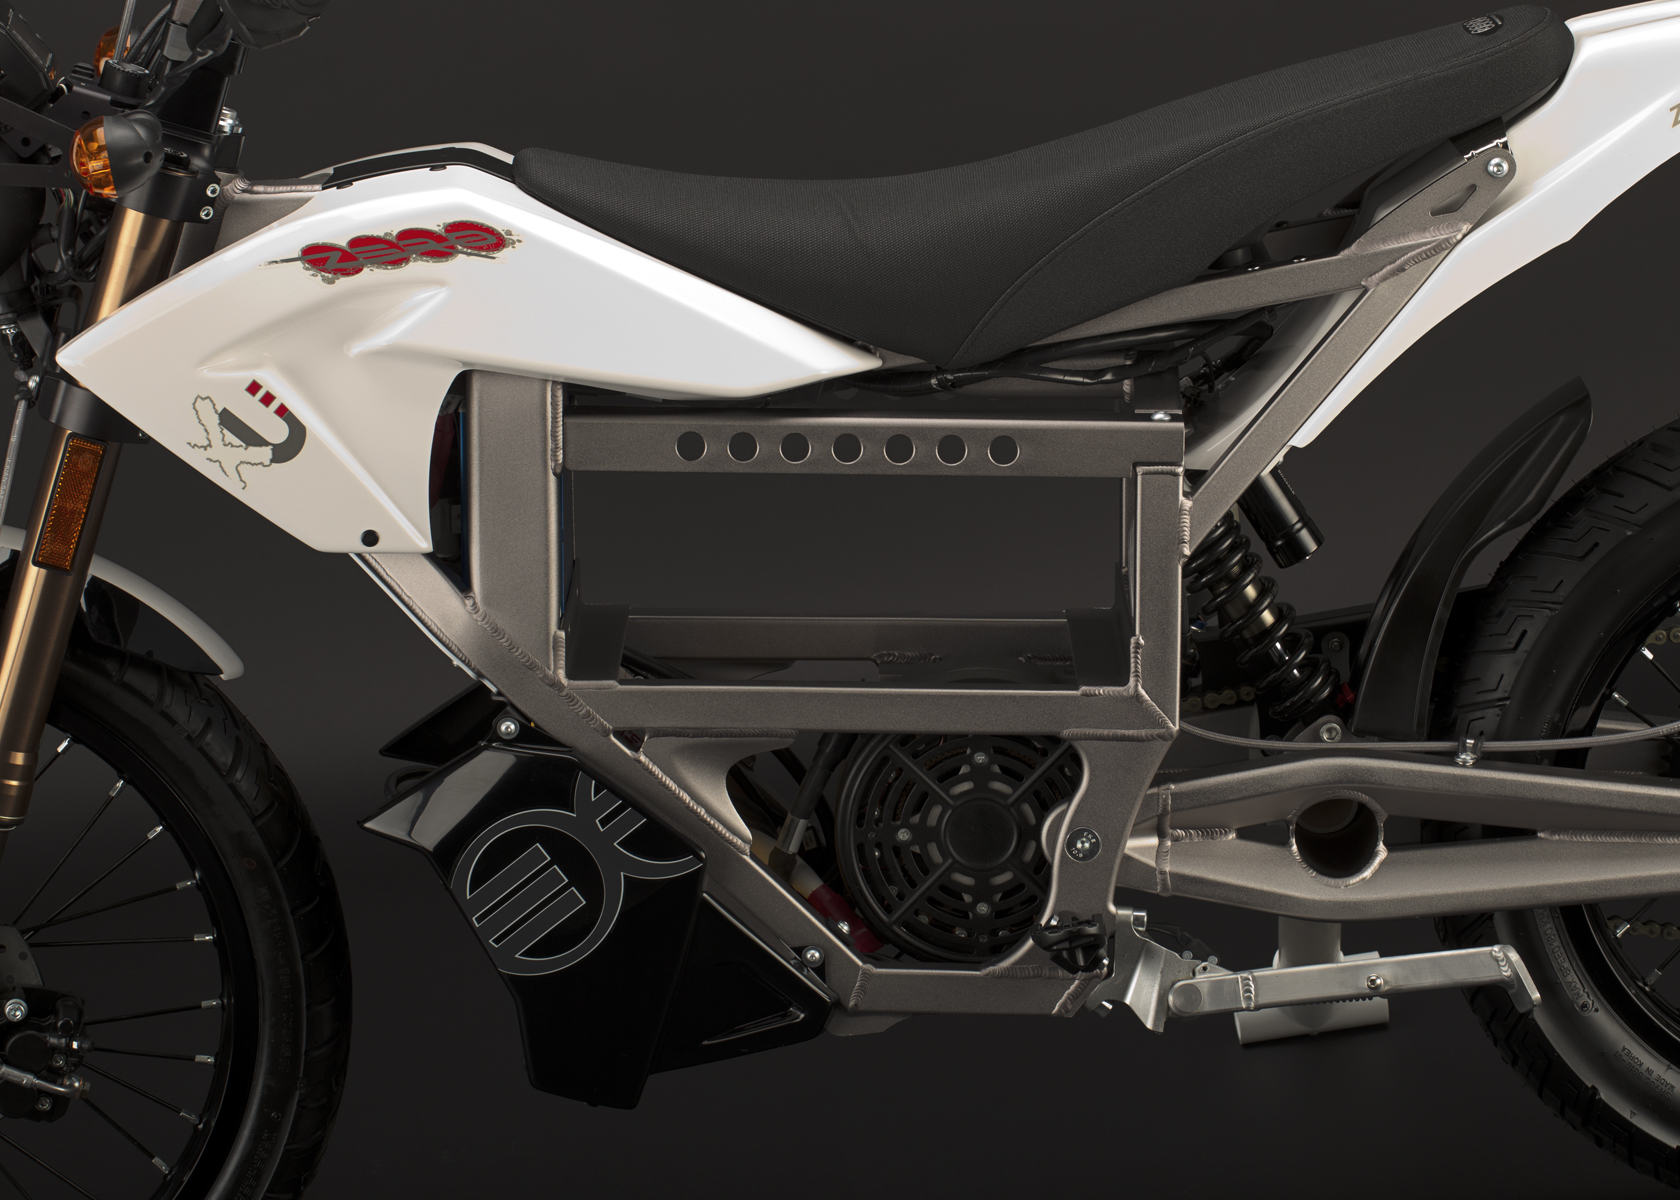 '.2011 Zero XU Electric Motorcycle: No Battery.'